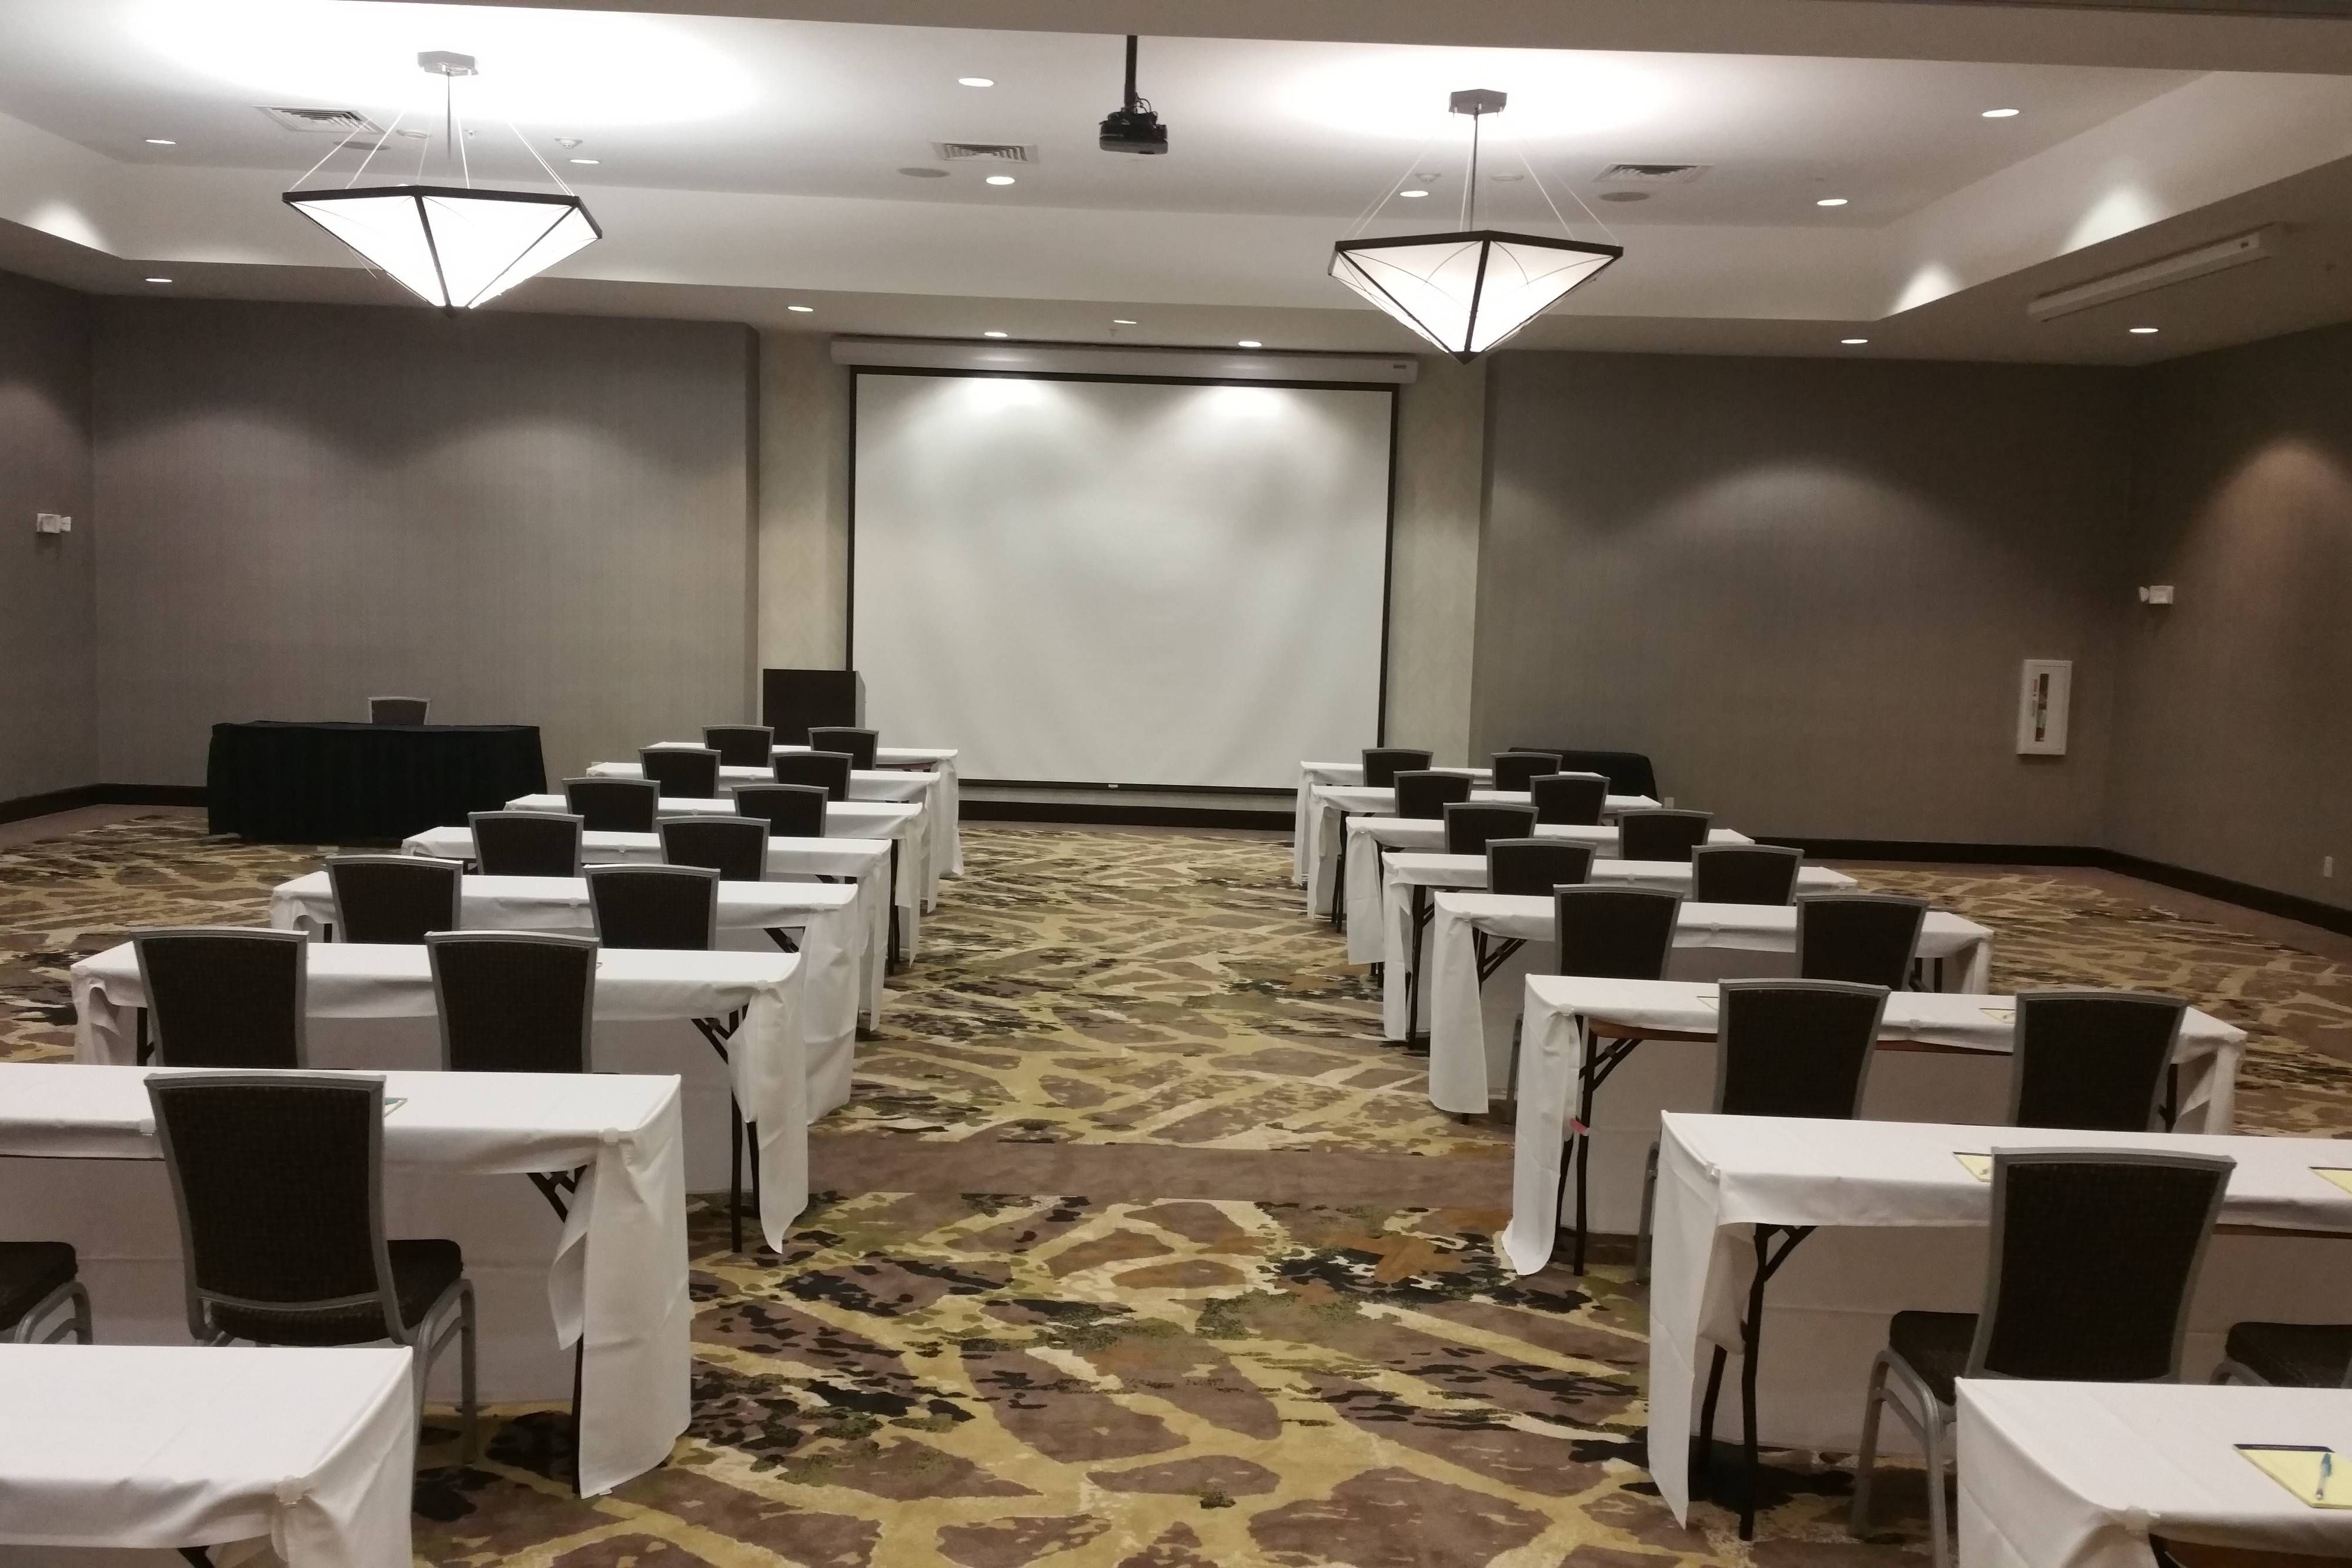 SpringHill Suites Denton Grand Ballroom ClassroomStyle